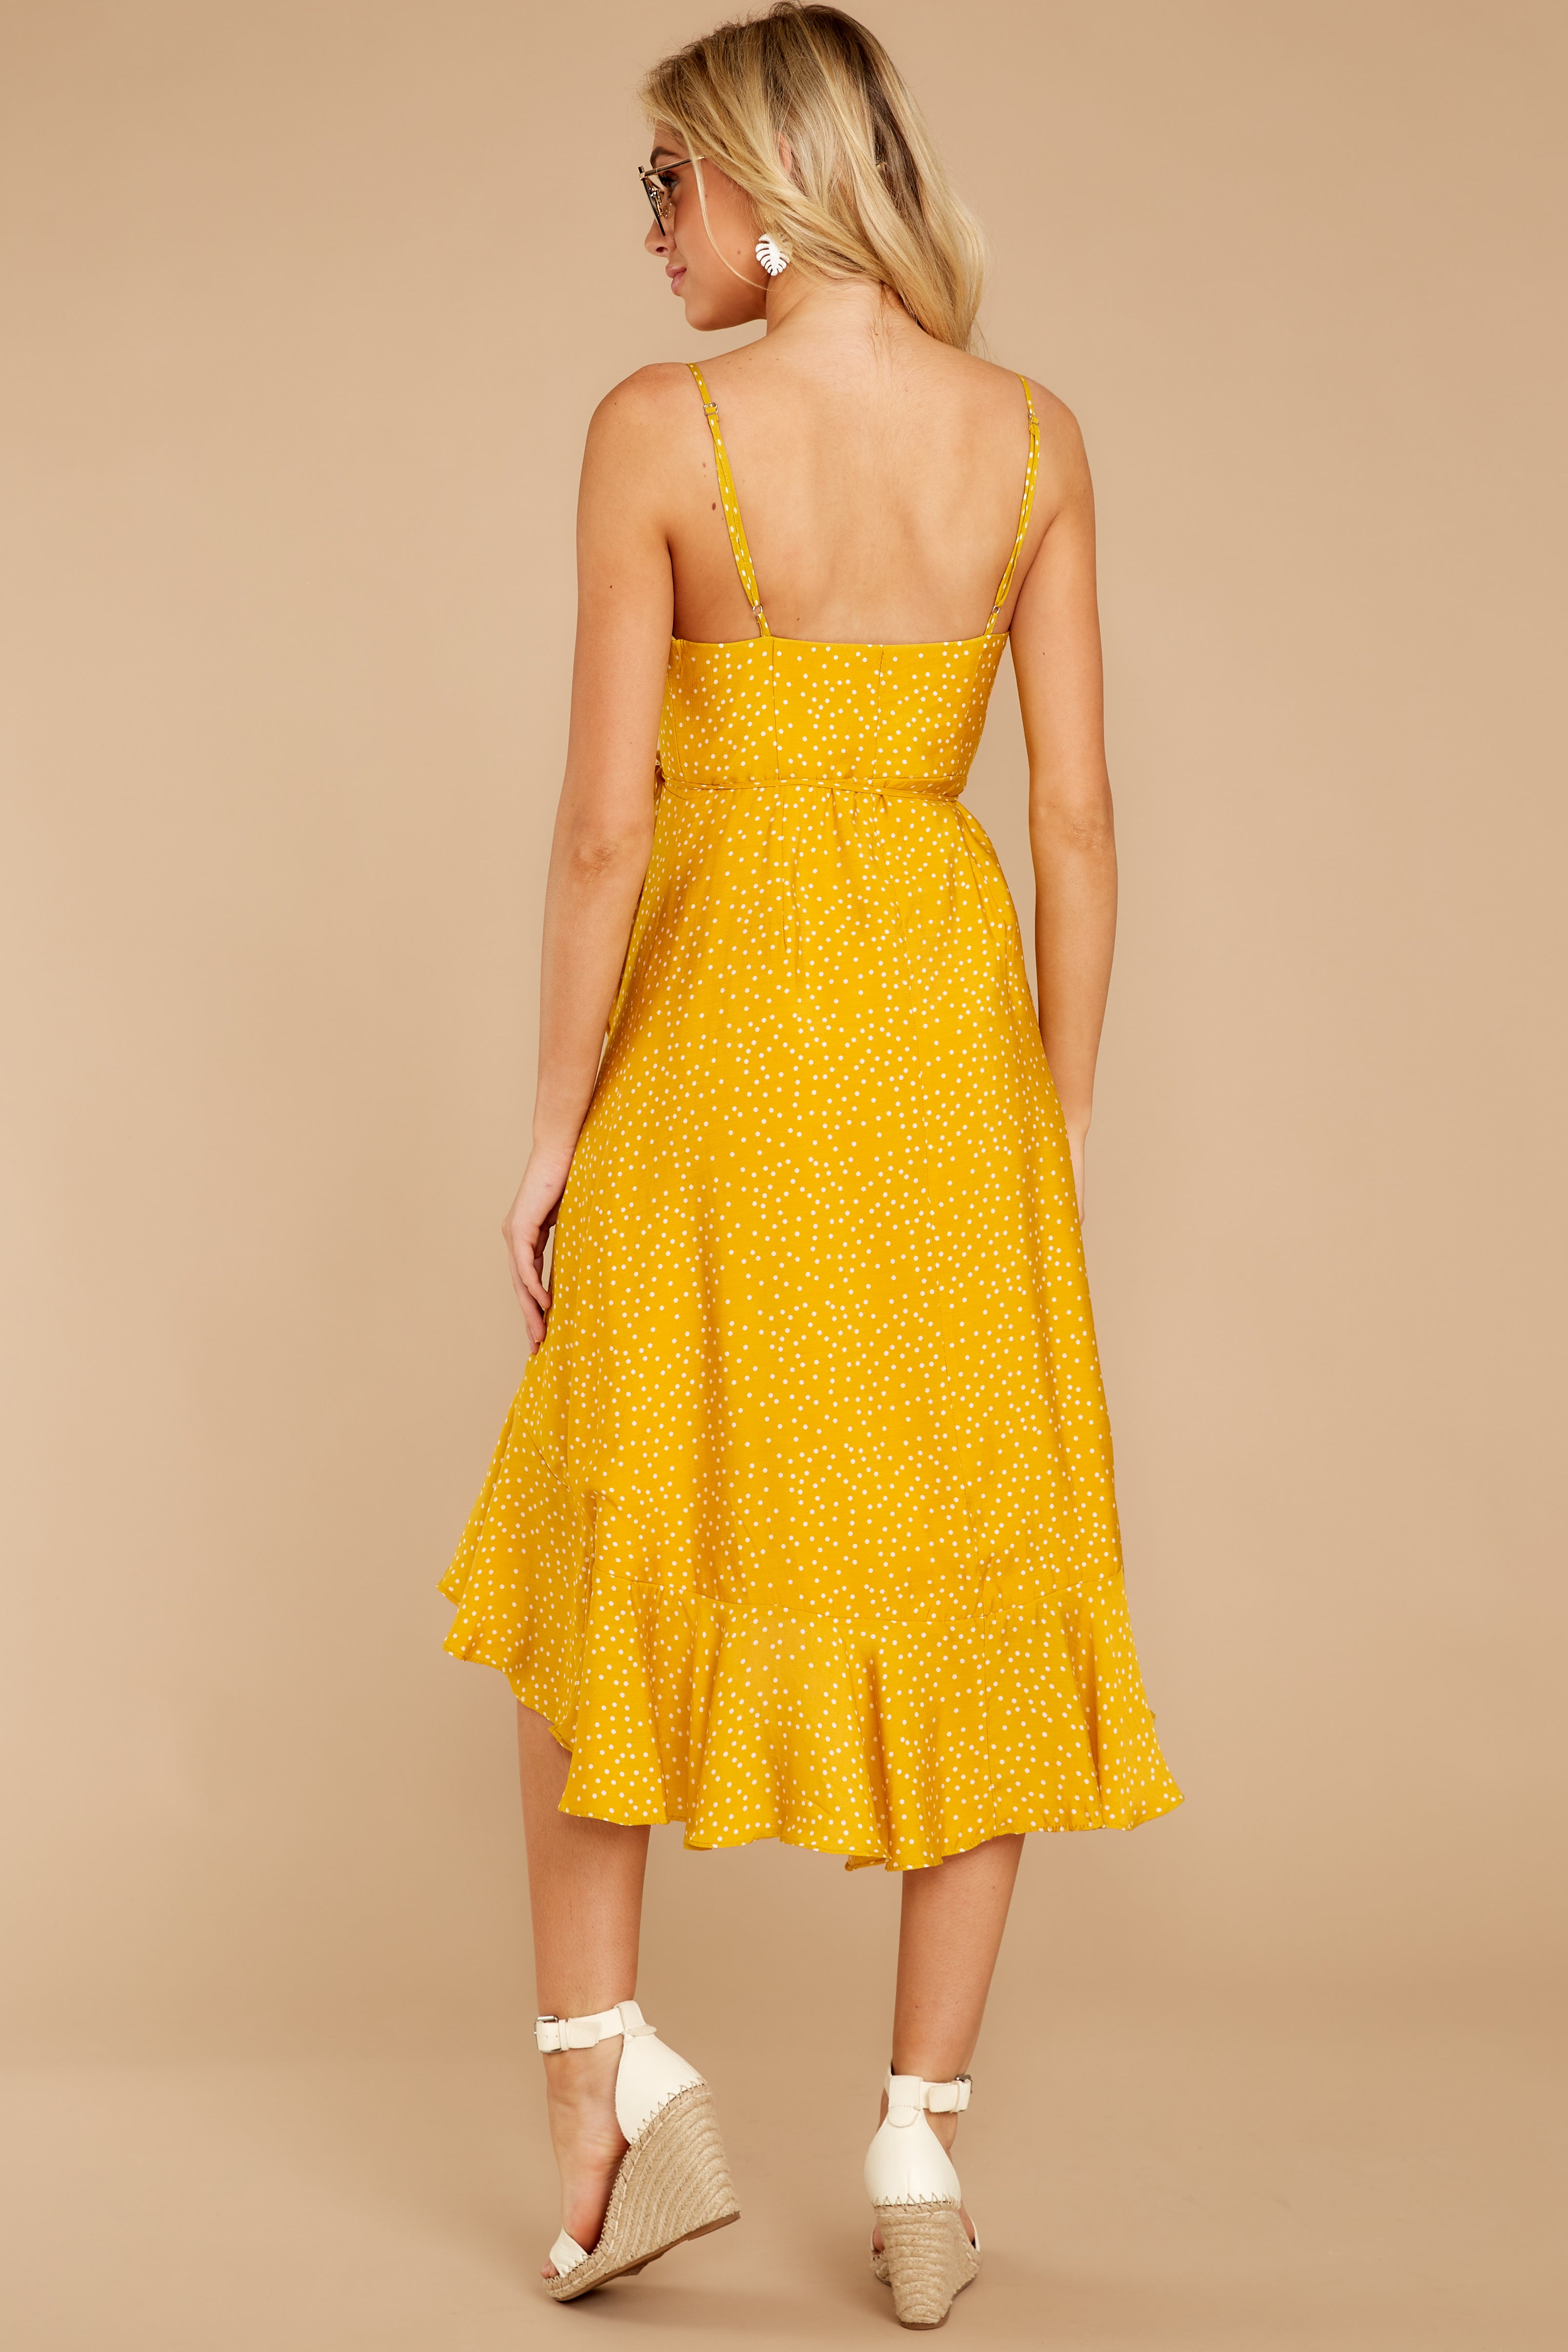 8 In The Meantime Mimosa Yellow Polka Dot Dress at reddress.com